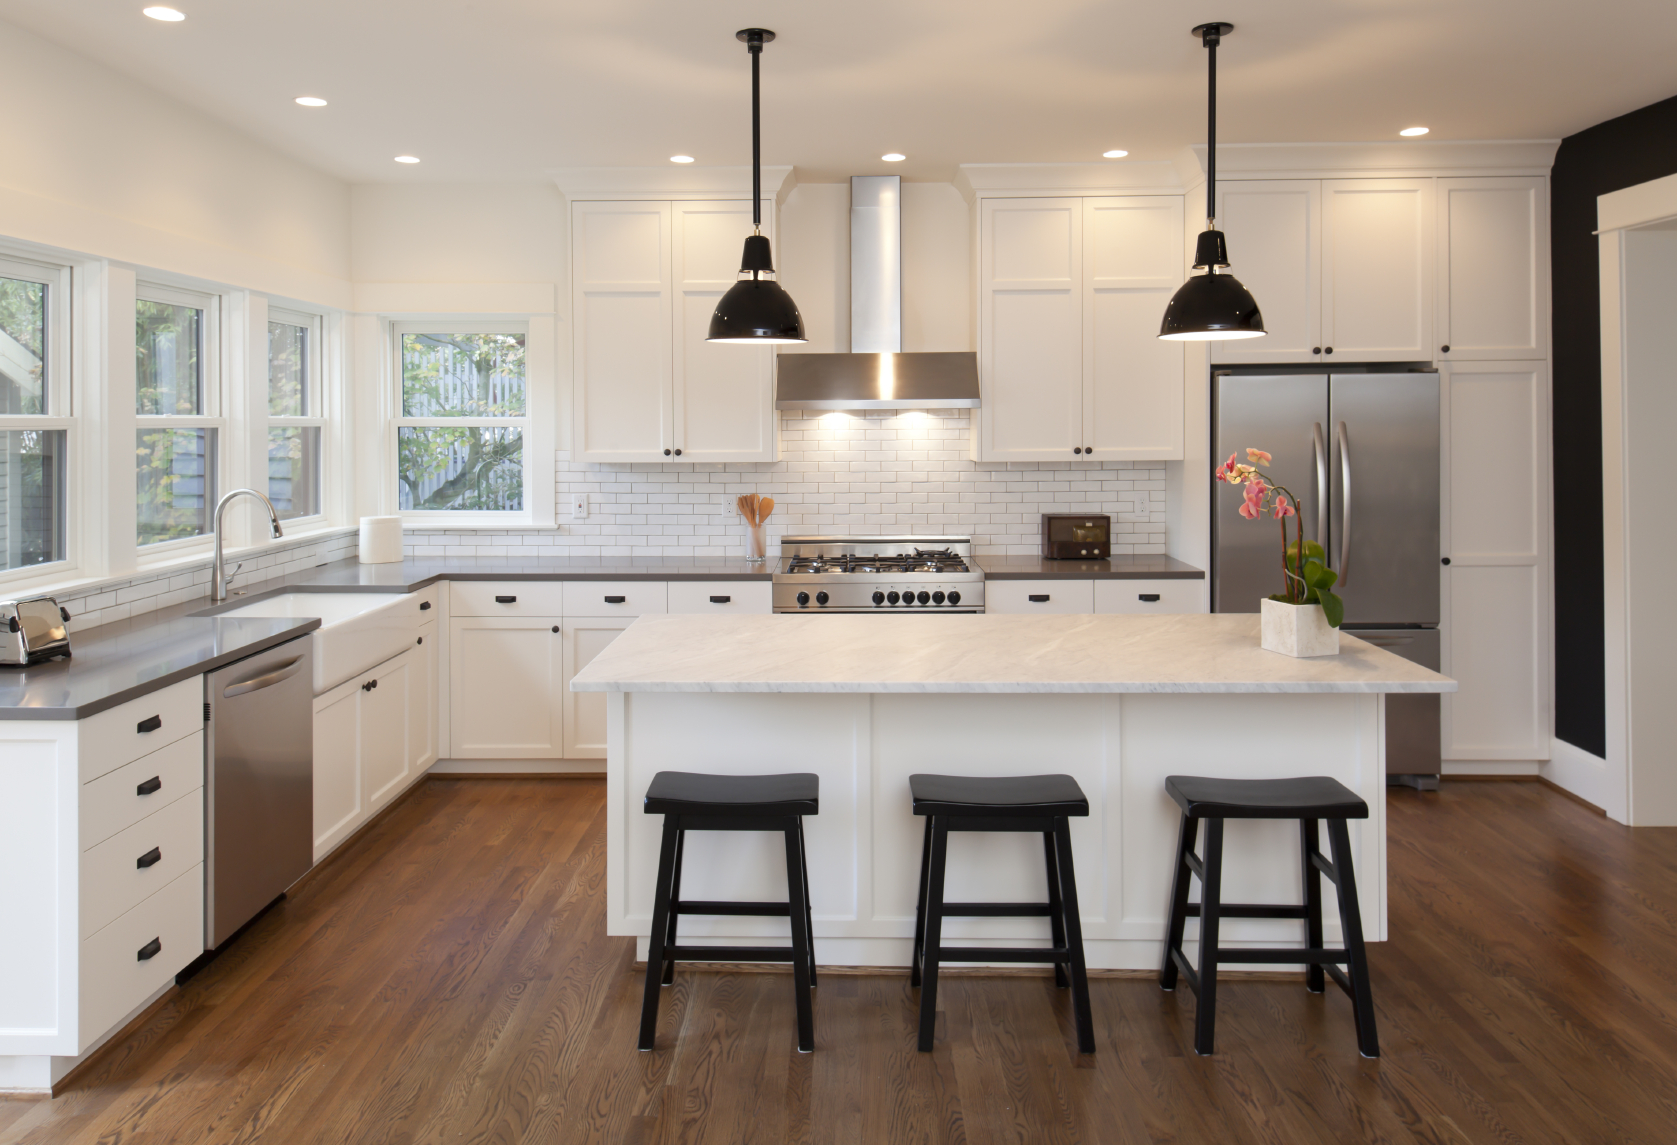 The dos and don 39 ts of kitchen remodeling huffpost for Kitchen improvements